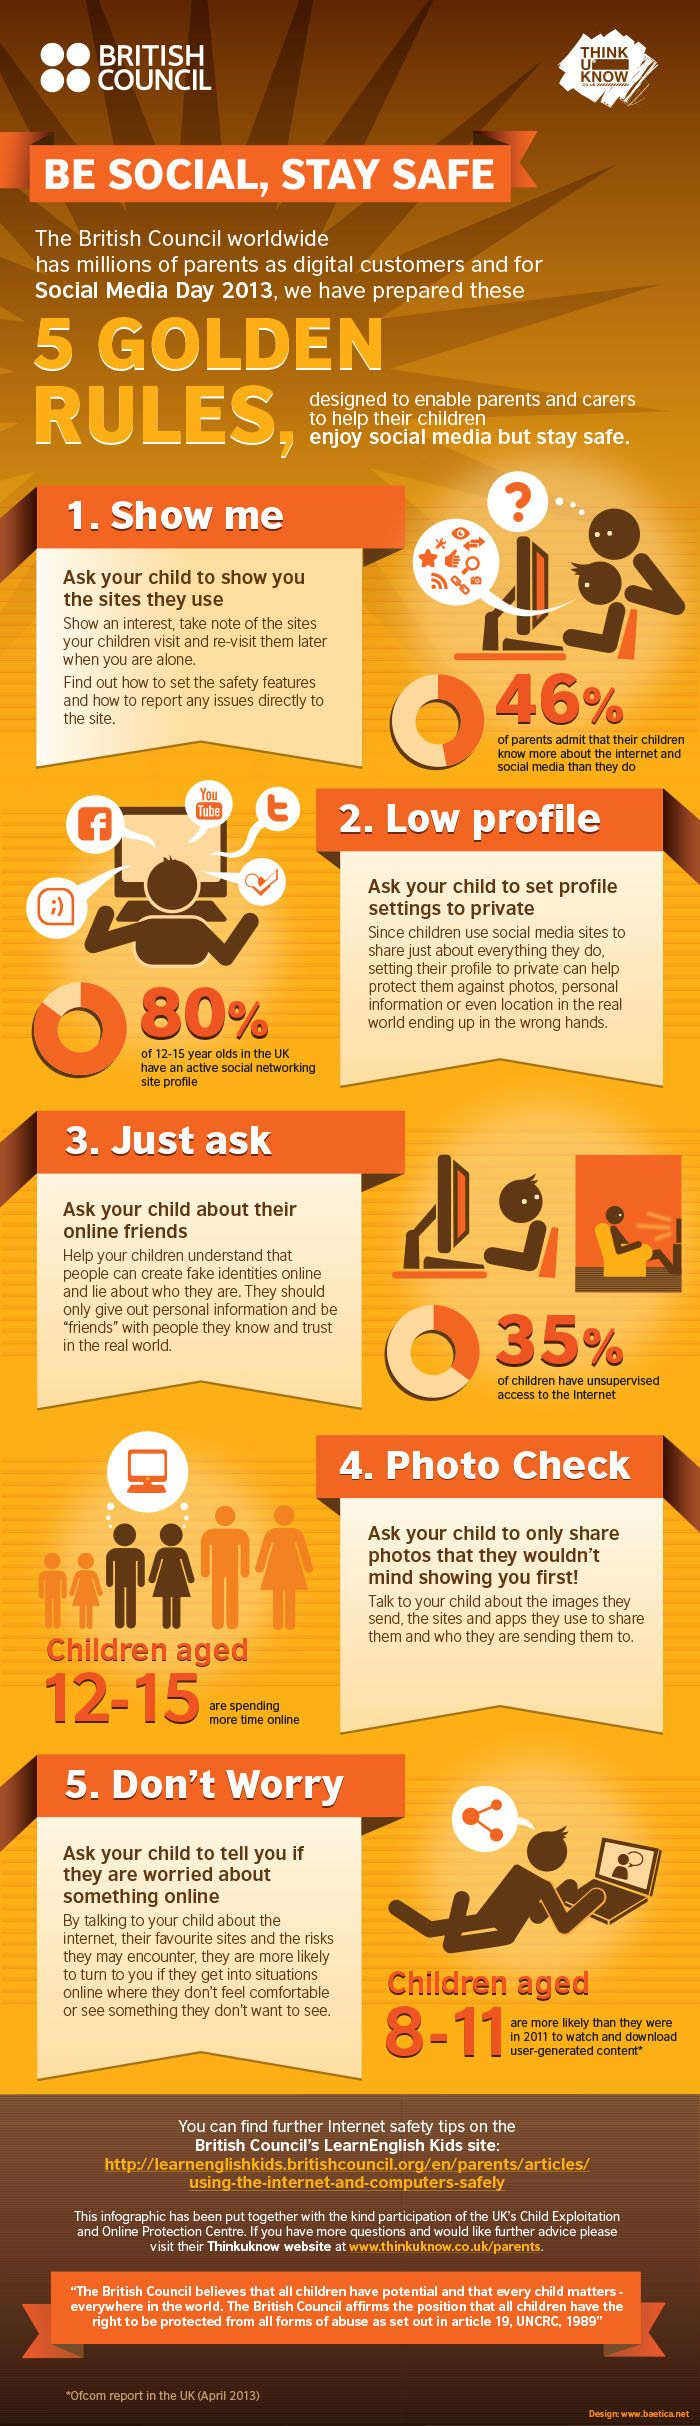 Be Social, Stay Safe: 5 Ways To Help Keep Children Safe In Social Media